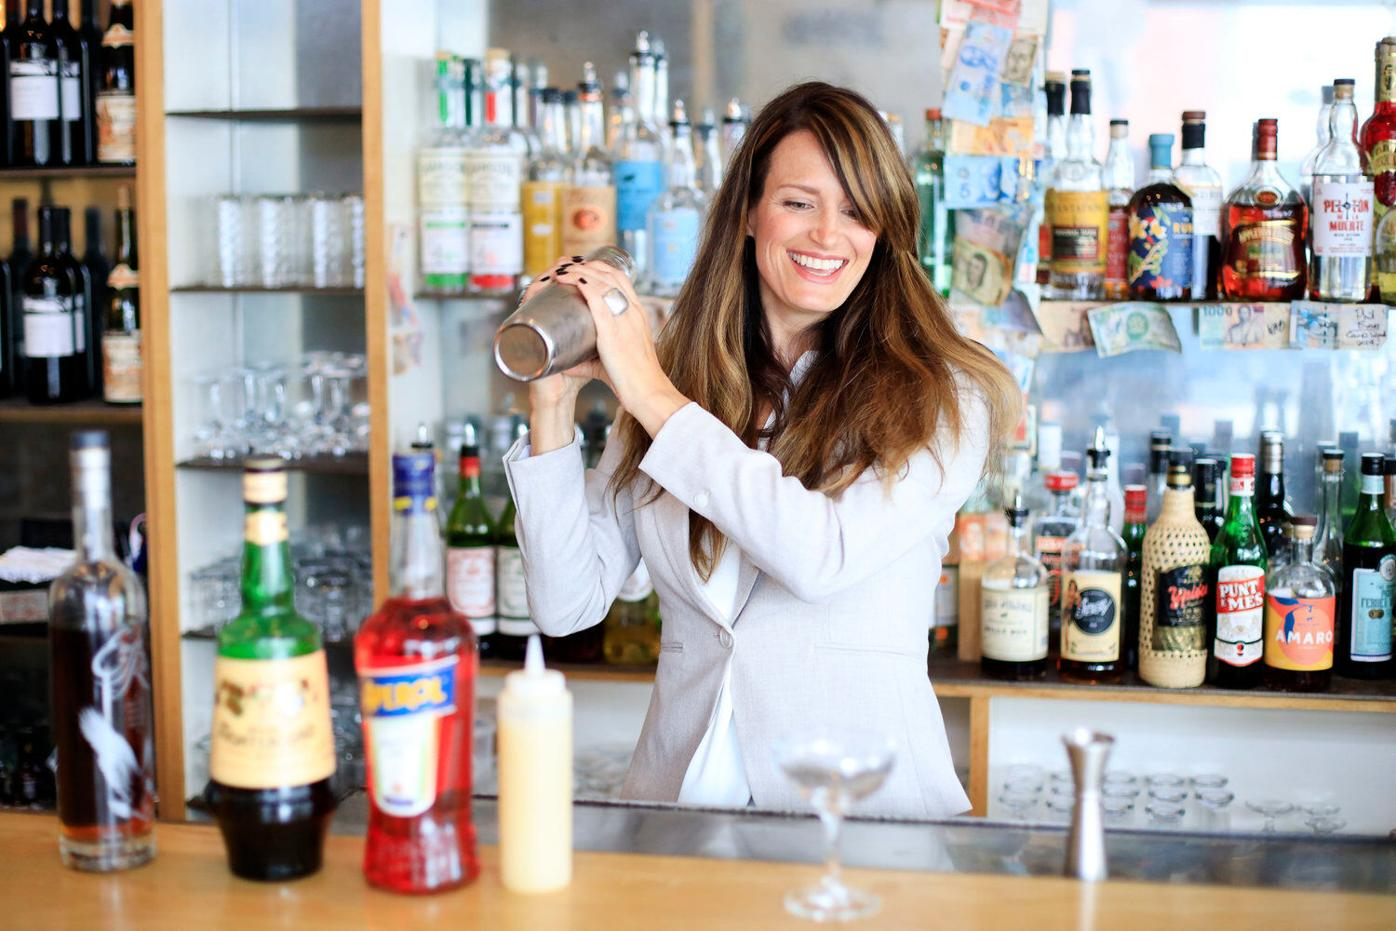 Straight Up: Lauren Ferin serves spirits with a side of spirituality